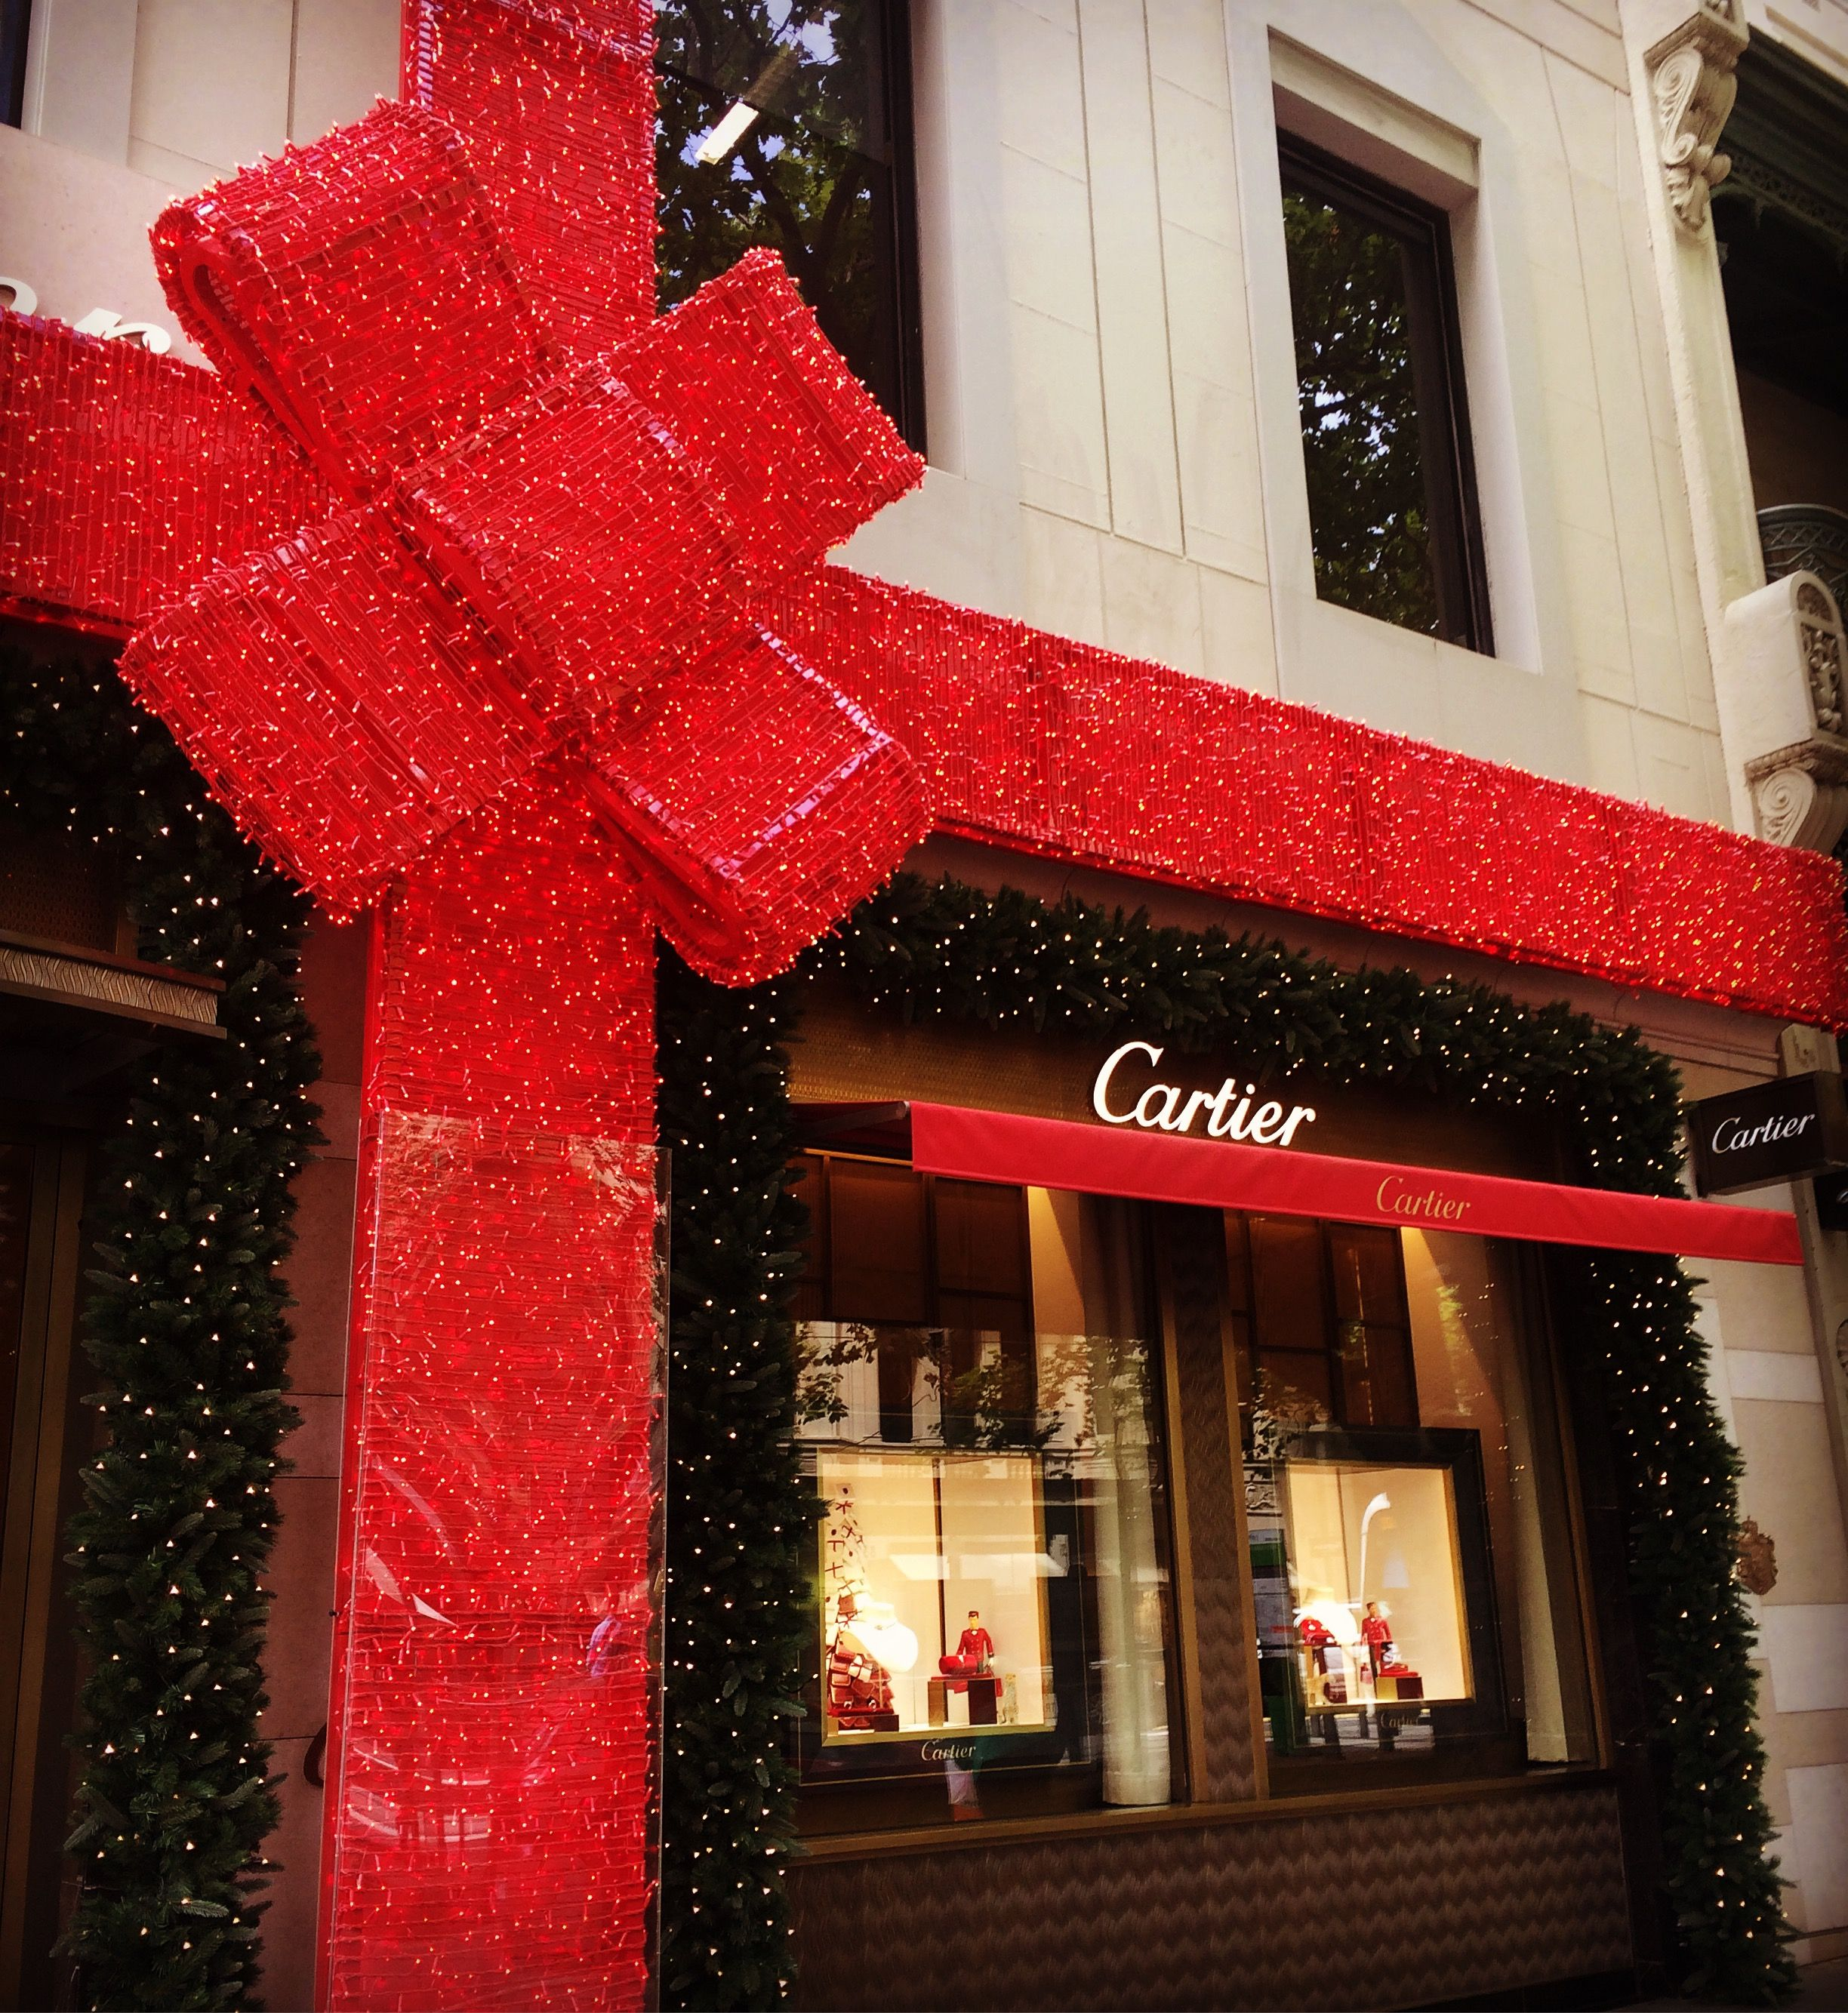 Cartier's Collins Street Melbourne 2018 Holiday specials